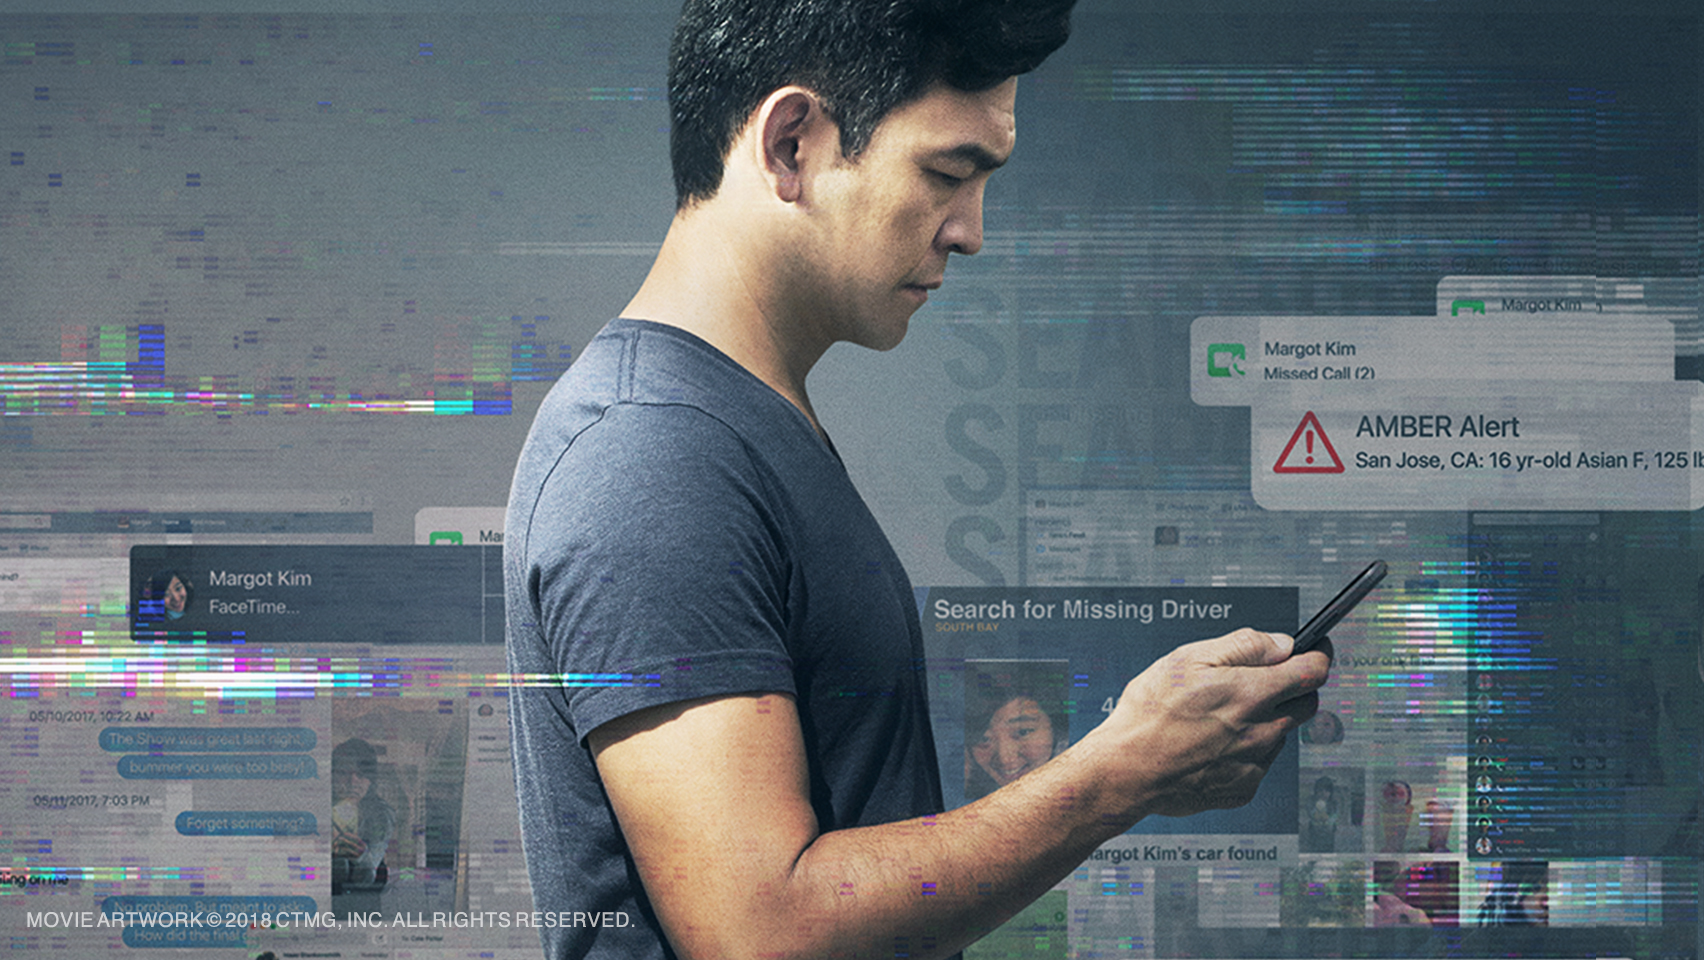 Searching Movie: Why Everyone Should Rethink Digital Behavior